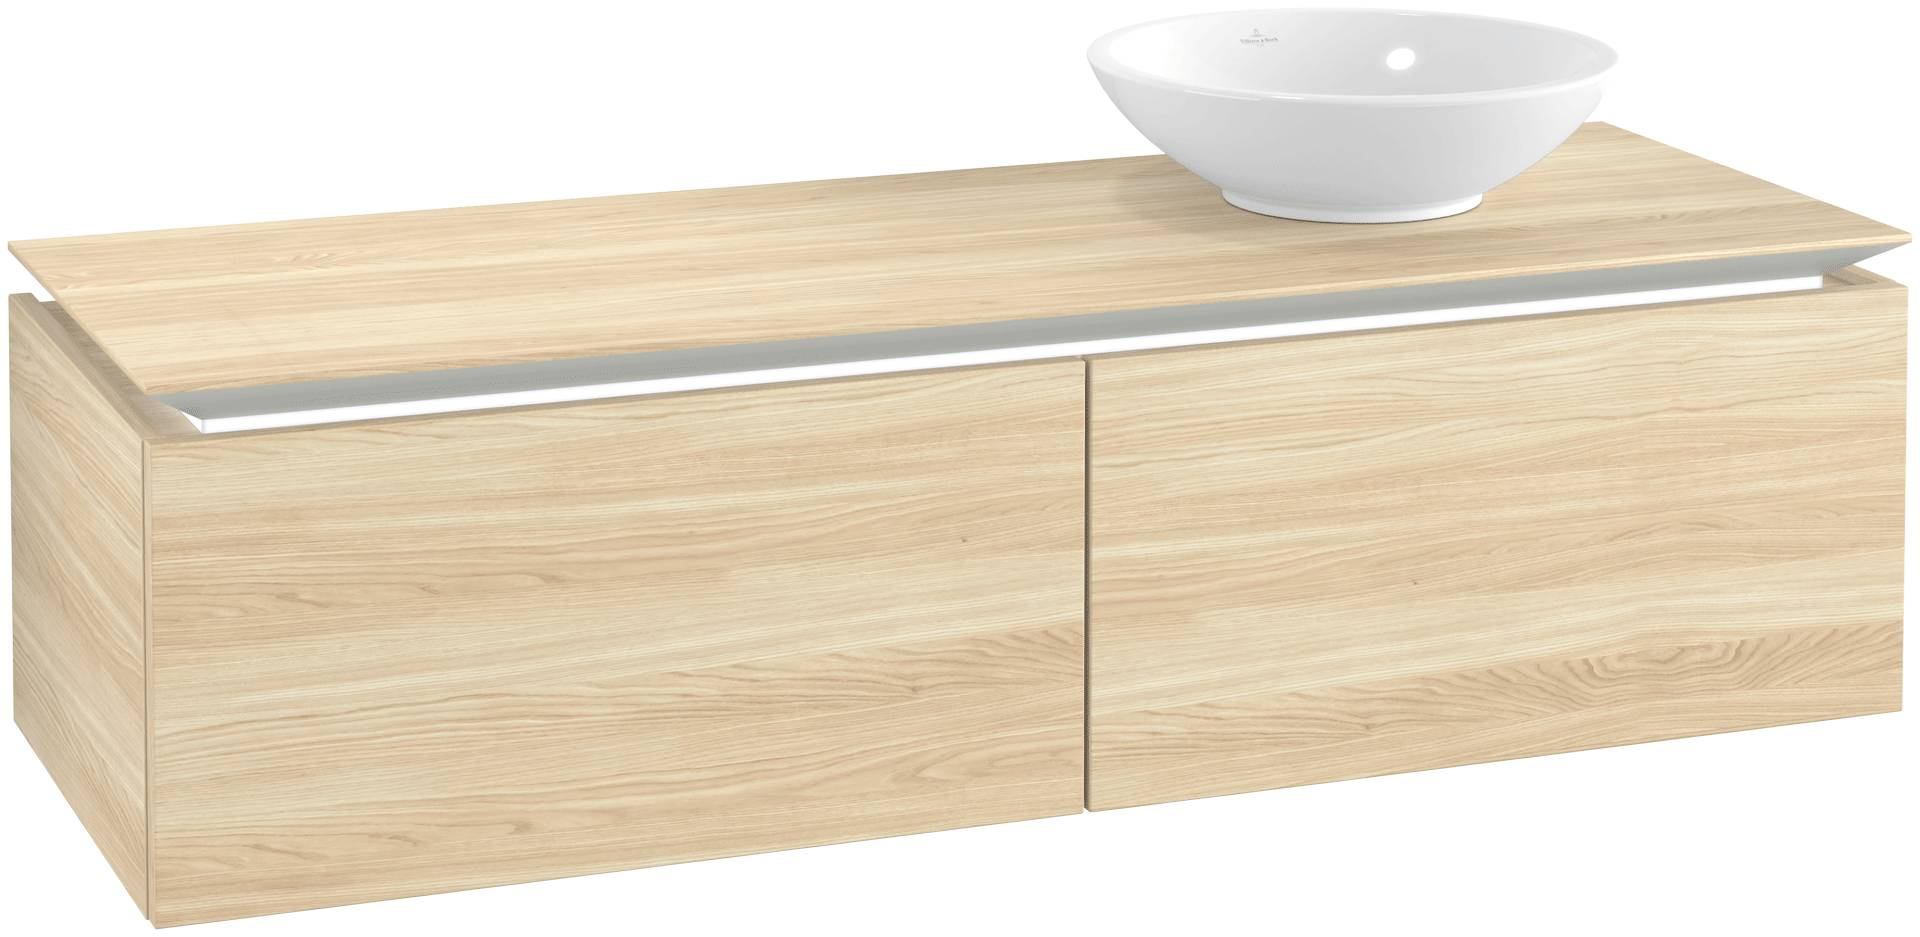 Villeroy & Boch Villeroy & Boch Legato - Meuble sous lavabo with 2 drawers & 1 cut-out right 1400 x 380 x 500mm orme impresso